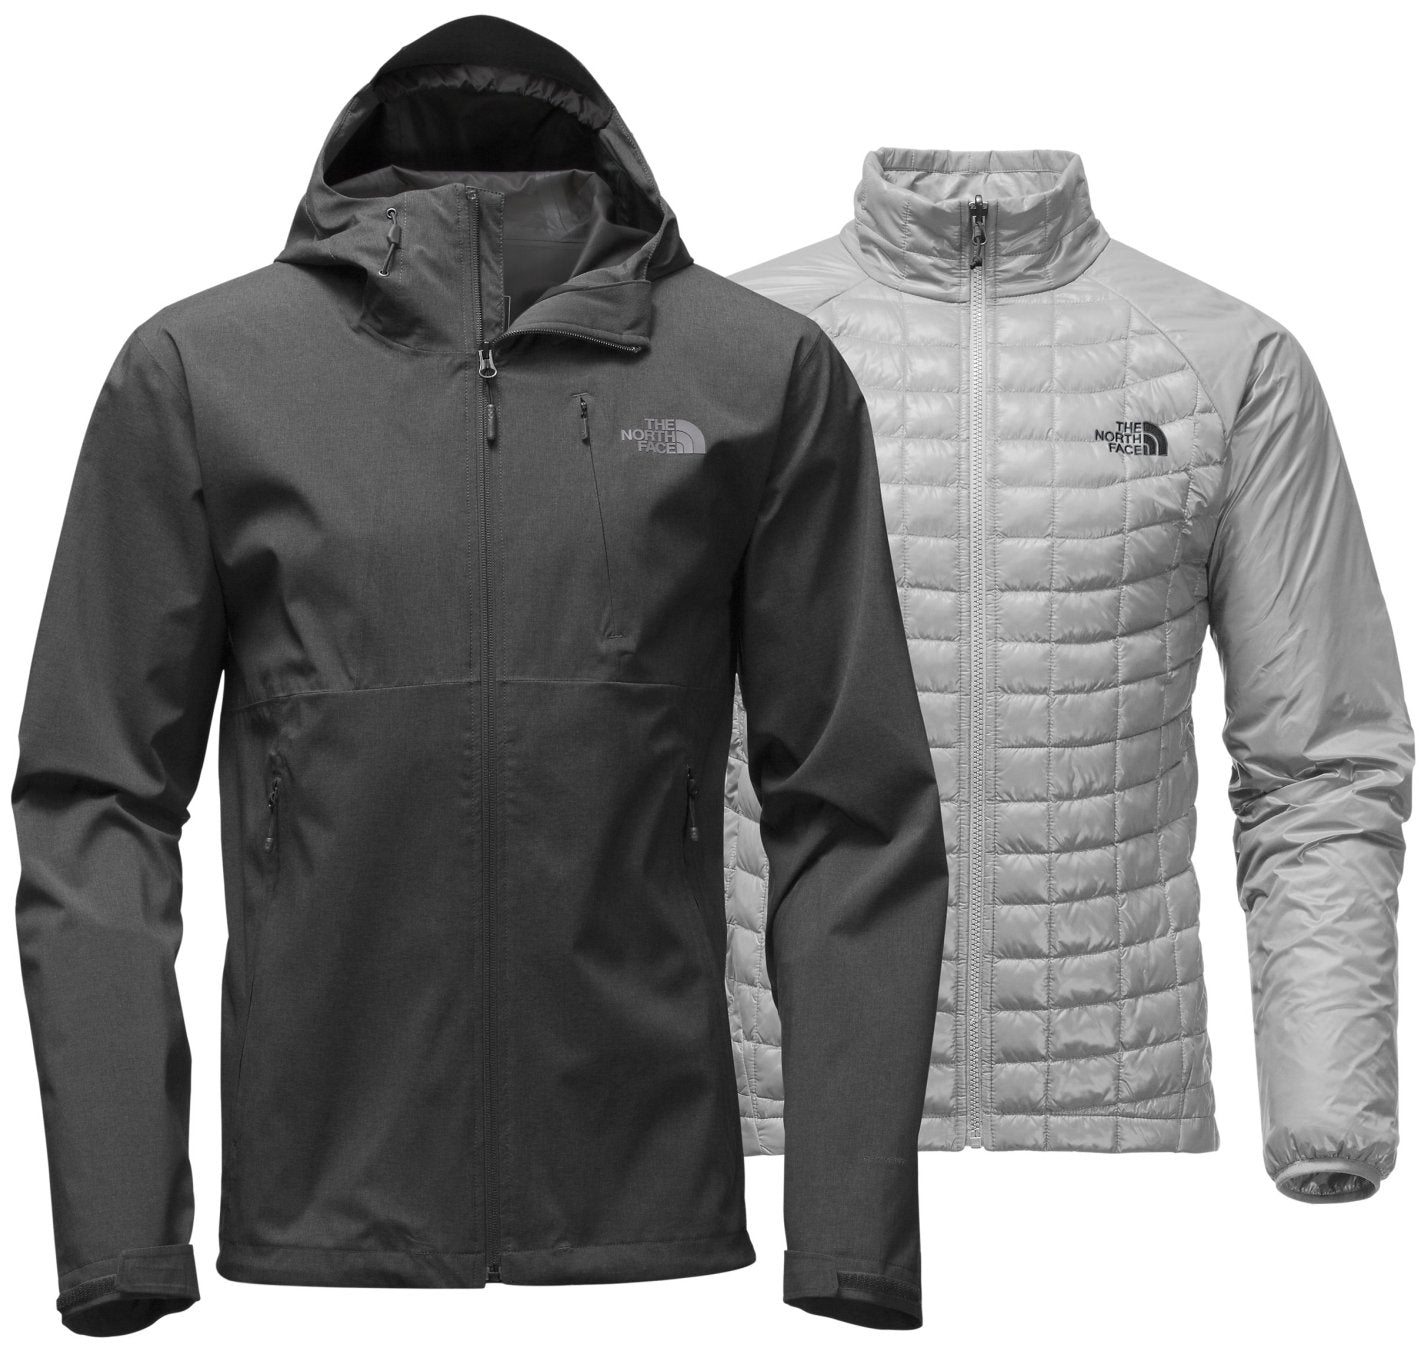 d559bc173 The North Face Thermoball Triclimate Jacket - Men's